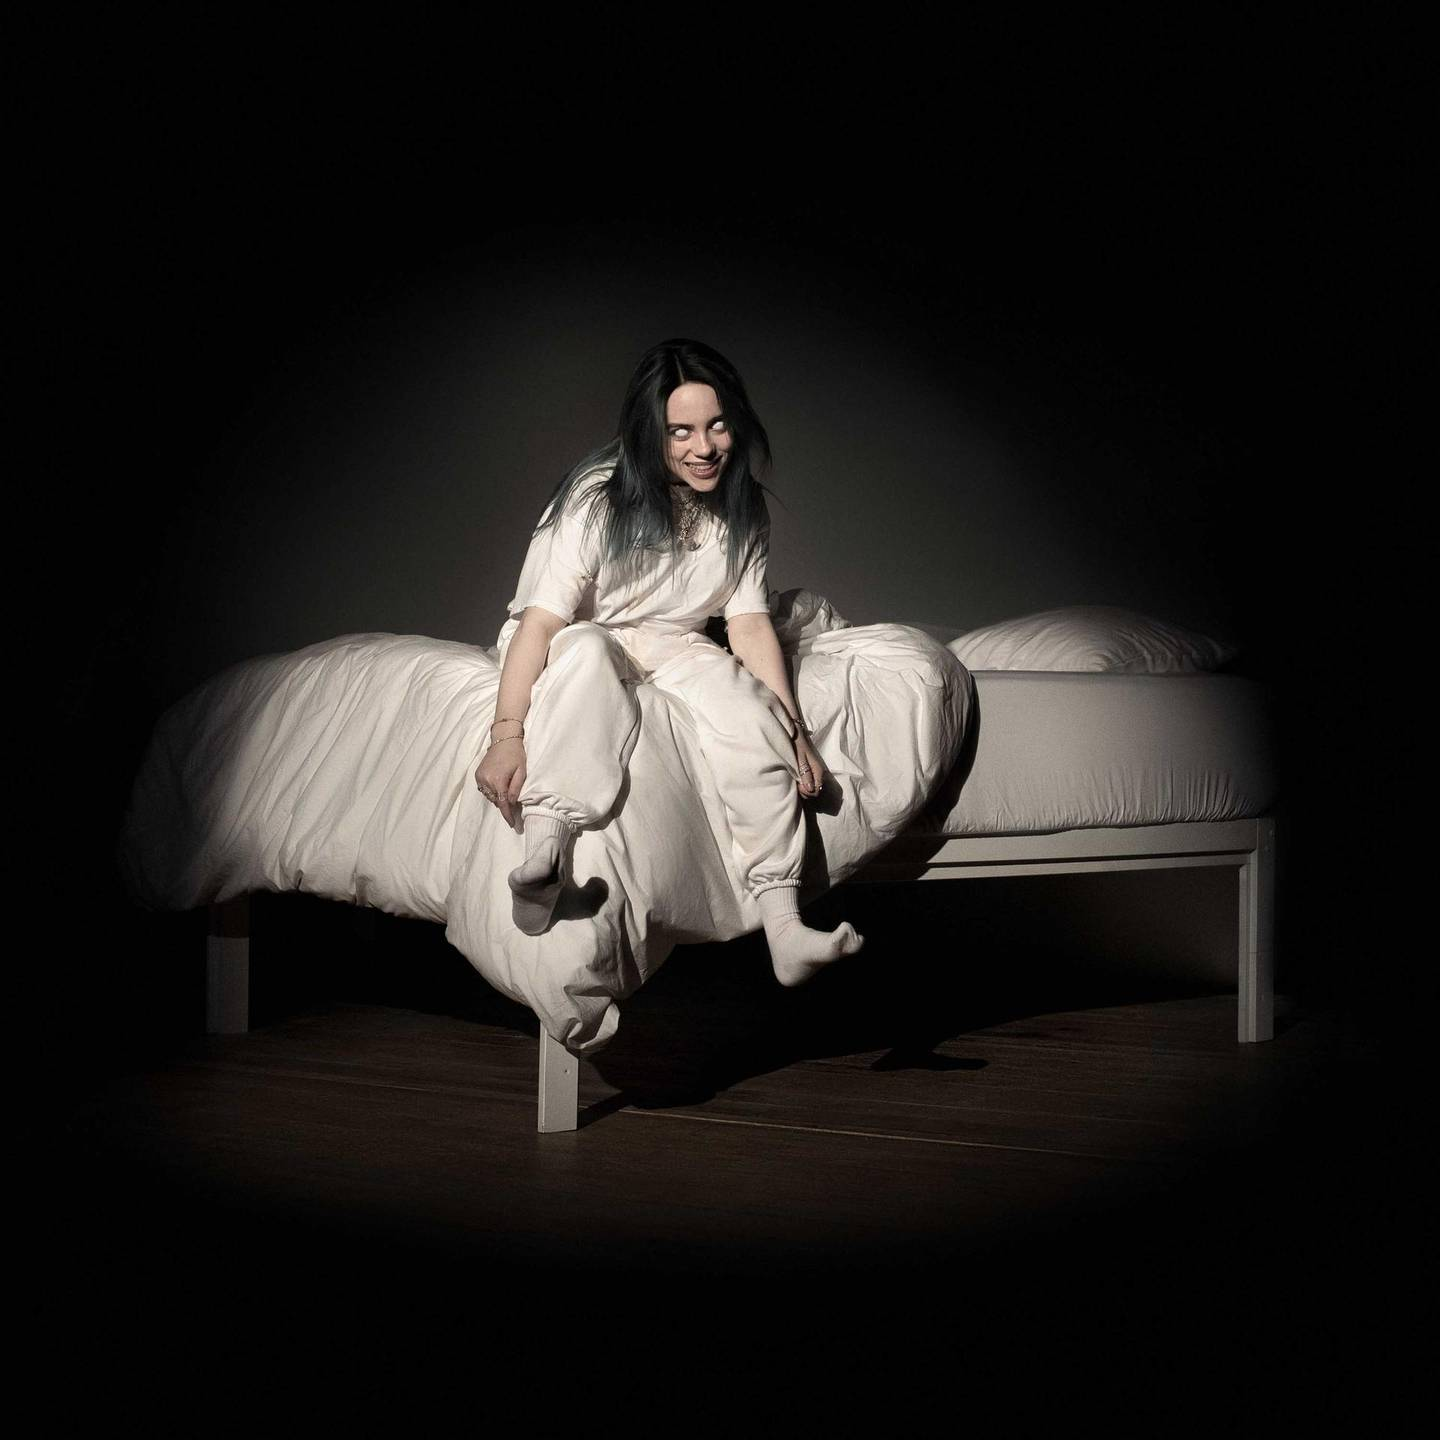 WHEN WE ALL FALL ASLEEP, WHERE DO WE GO? by Billie Eilish. Courtesy DARKROOM/INTERSCOPE RECORDS